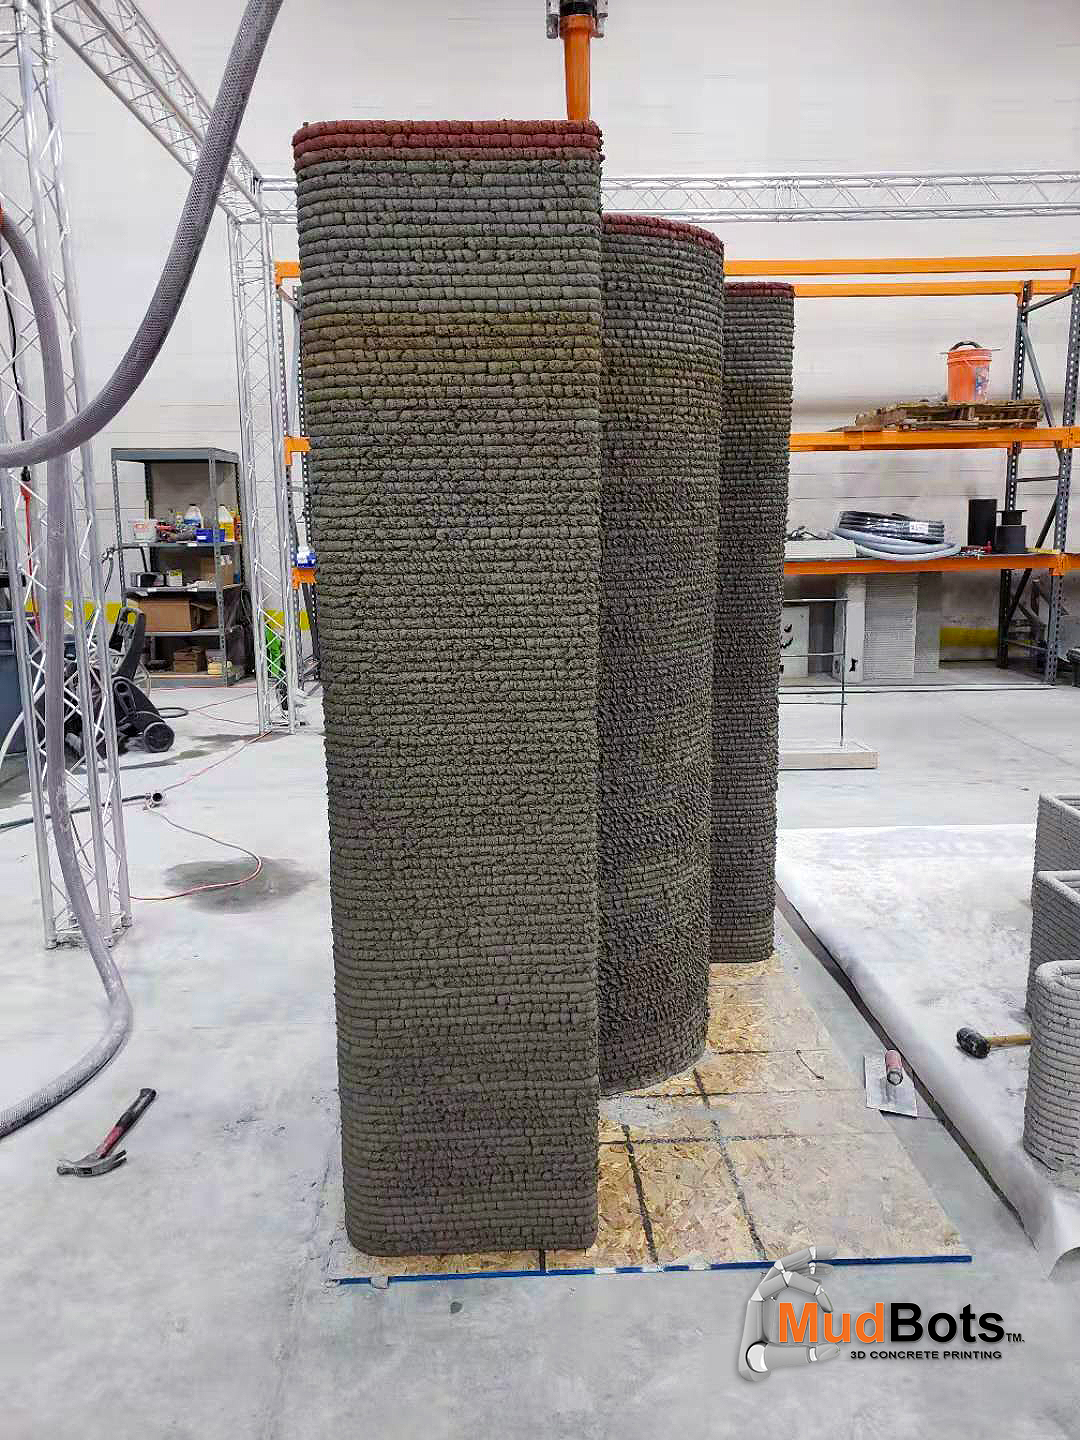 Look at the consistency of each layer. This requires precise data on the characteristics of the mix being used, a mixing/ pumping system that are working in unison at the exact volume rate. This is a wall that was printed from top to bottom in a continual print without stopping. Most walls being shown online are printed in sections on different days because lower layers are not able to support the weight and height of subsequent passes without falling.